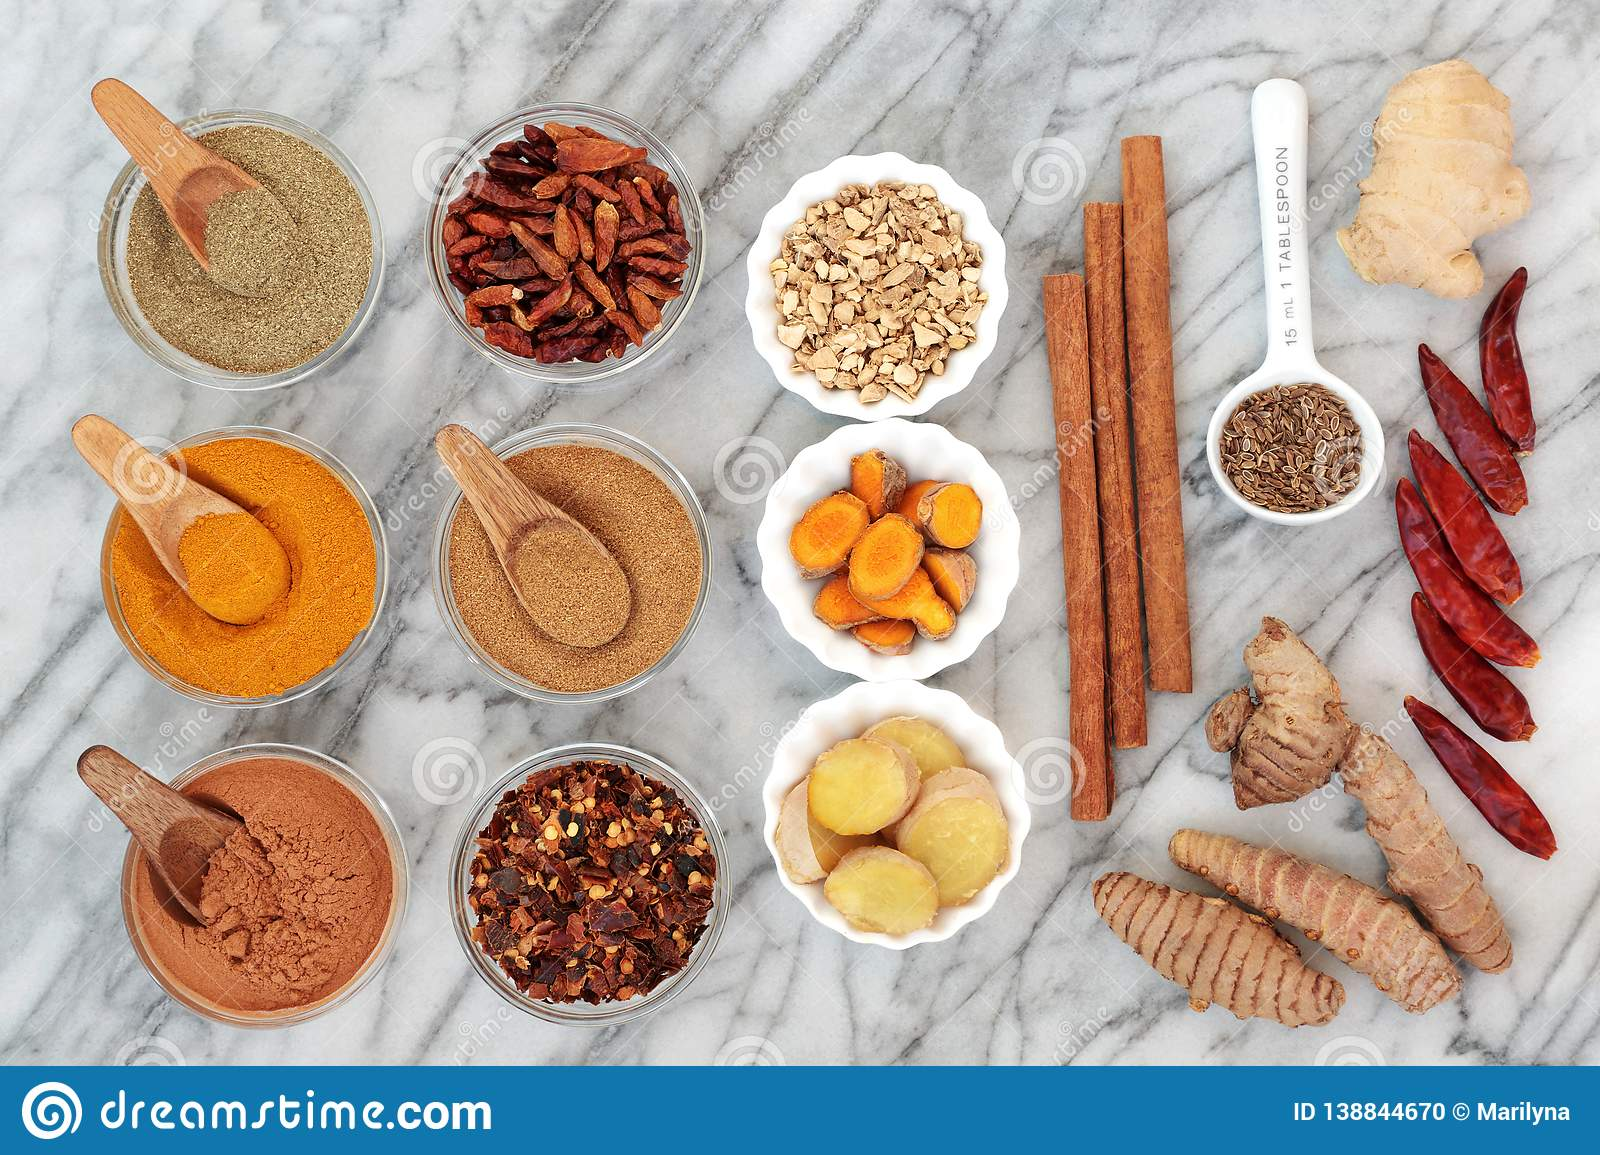 Fat Busting Spices for Weight Loss